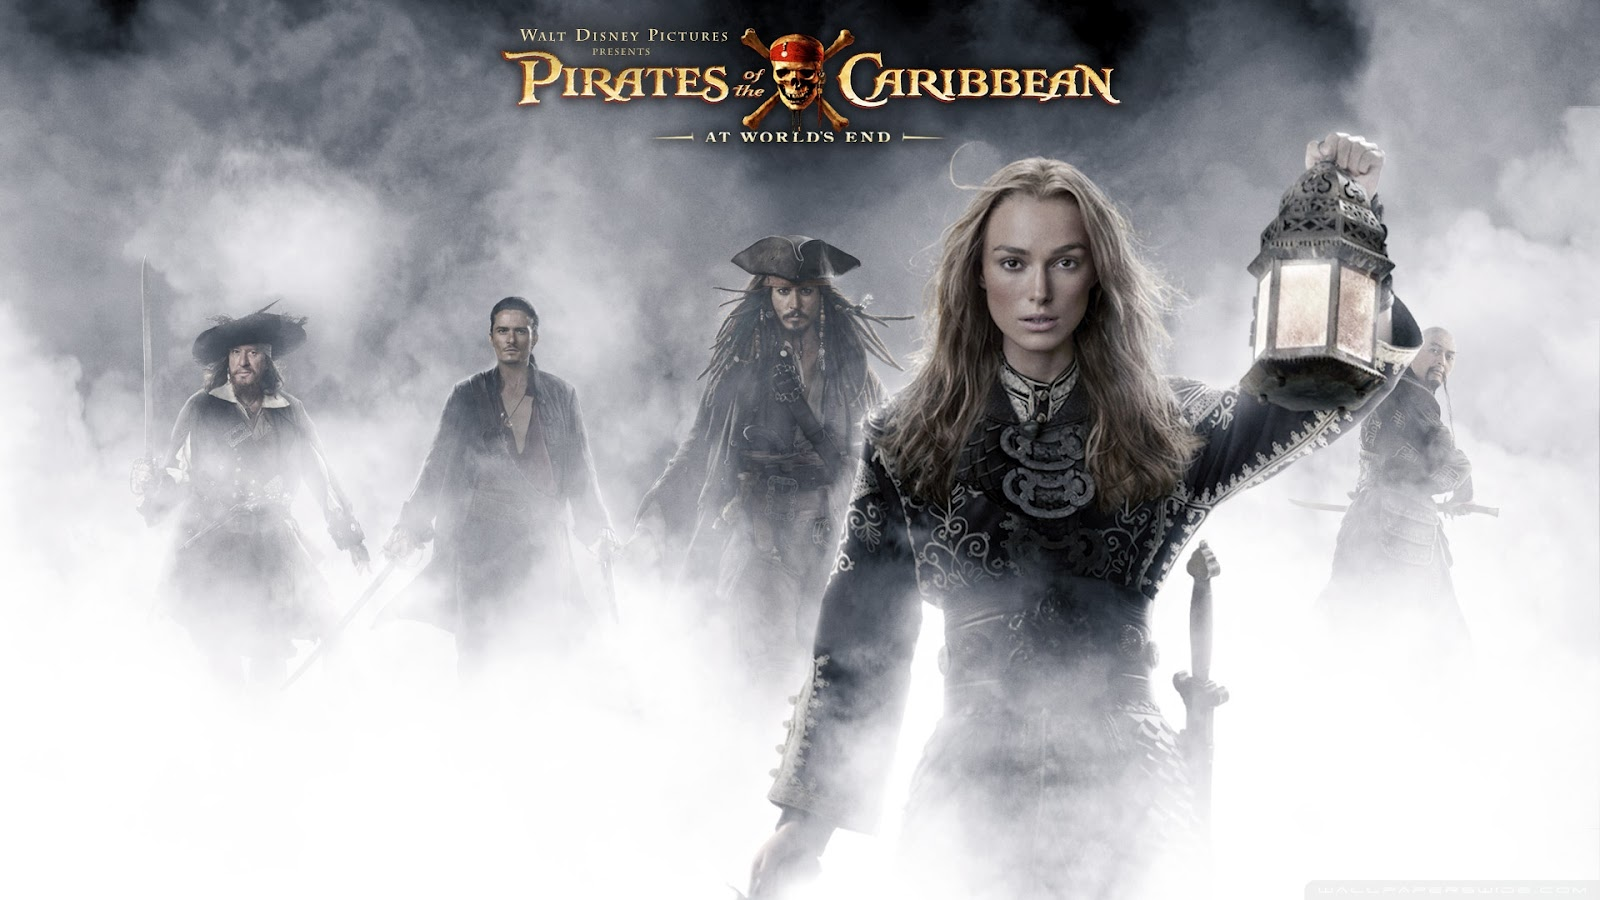 http://4.bp.blogspot.com/-ALoMR09Xkf0/UBHfpctxnSI/AAAAAAAACRw/2mp5BY3_azs/s1600/keira_knightley_pirates_of_the_caribbean_at_worlds_end-wallpaper-1920x1080.jpg